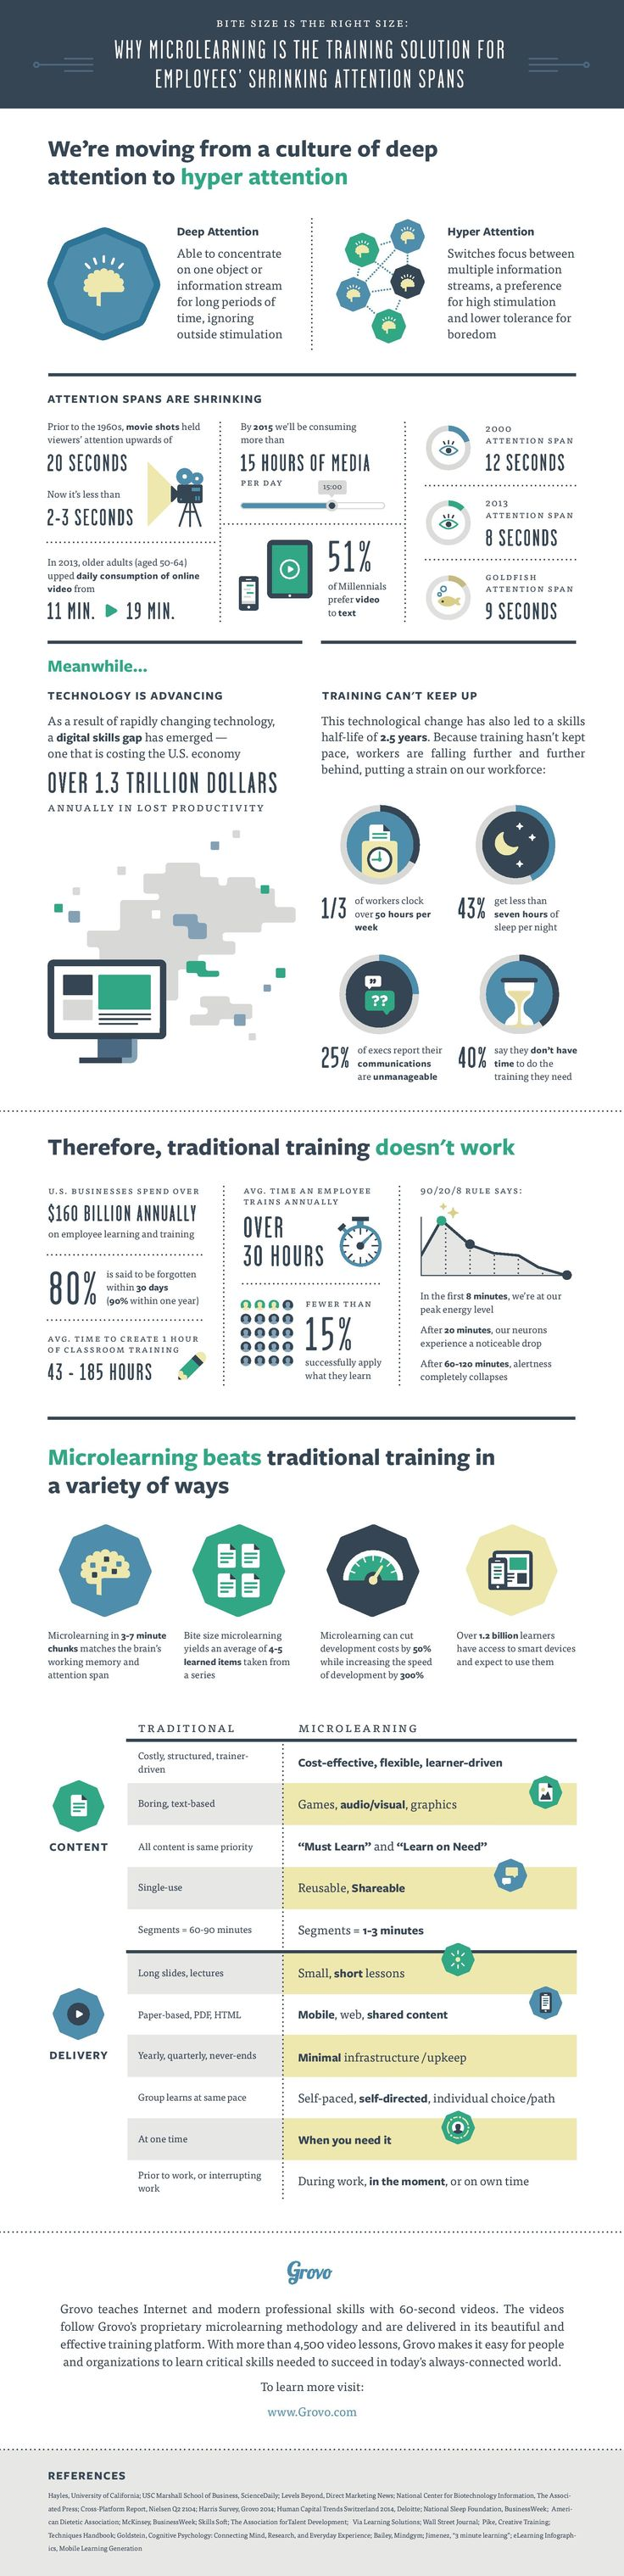 Traditional Training vs the Bite Size Approach Infographic - http://elearninginfographics.com/traditional-training-vs-bite-size-approach-infographic/ #elearning